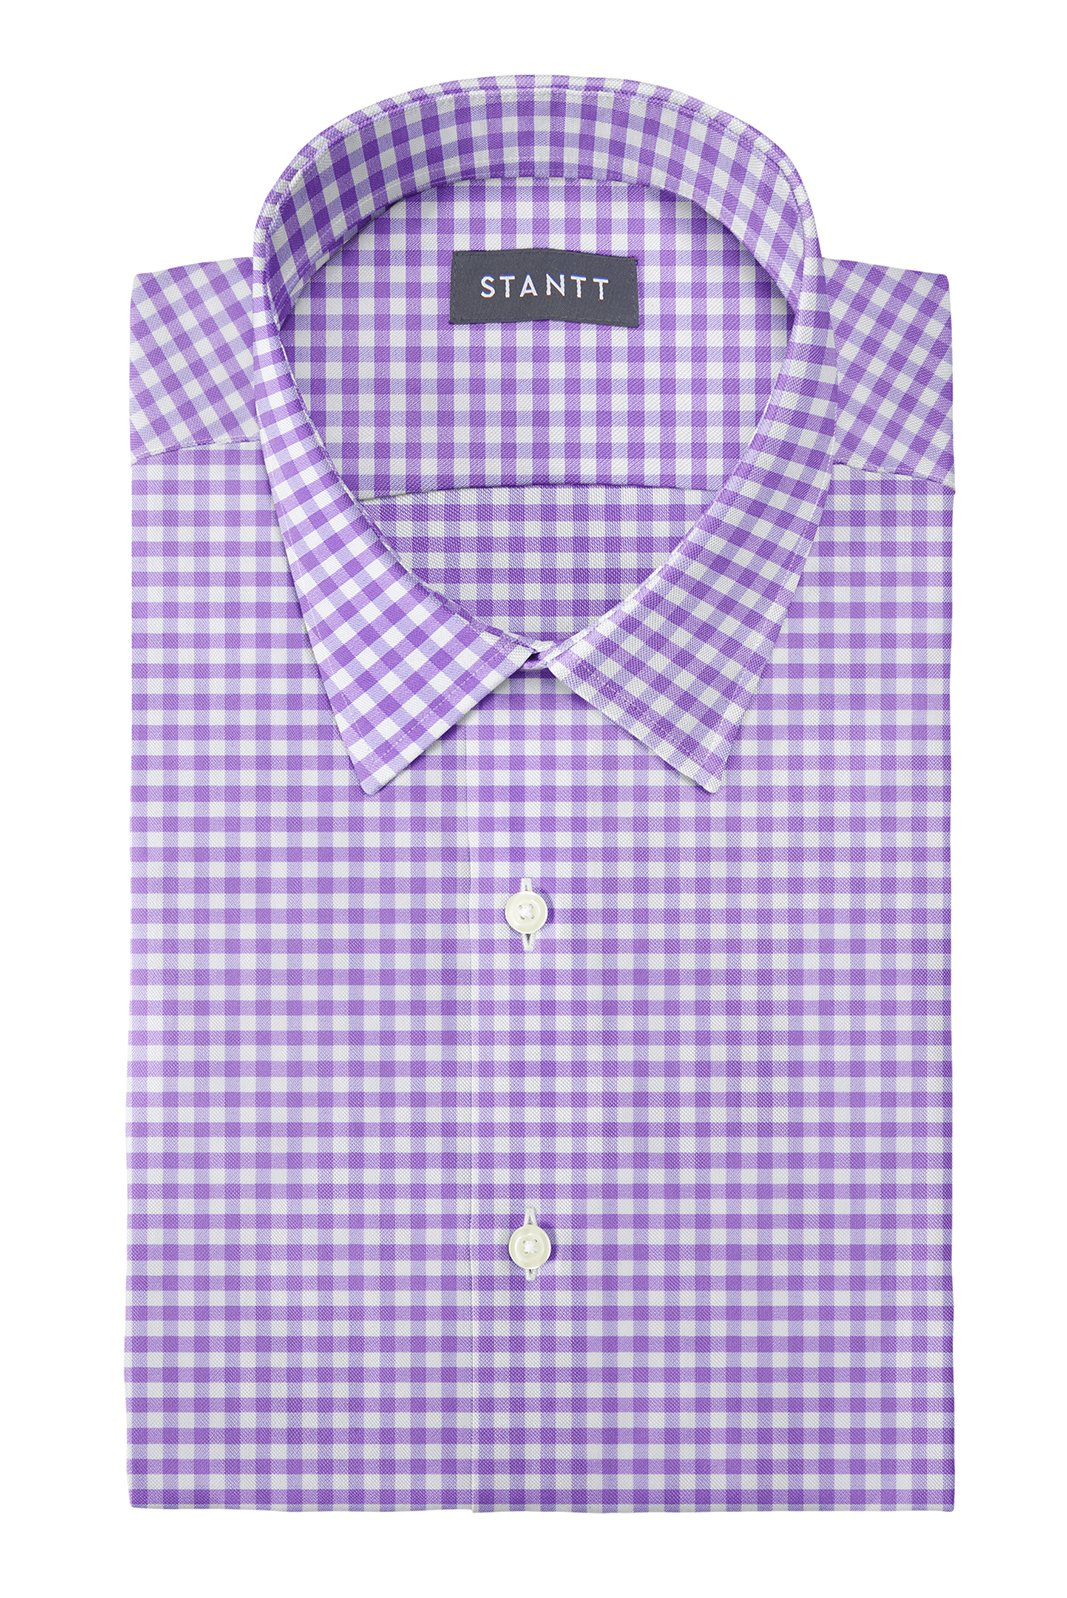 Performance Purple Gingham: Semi-Spread Collar, French Cuff